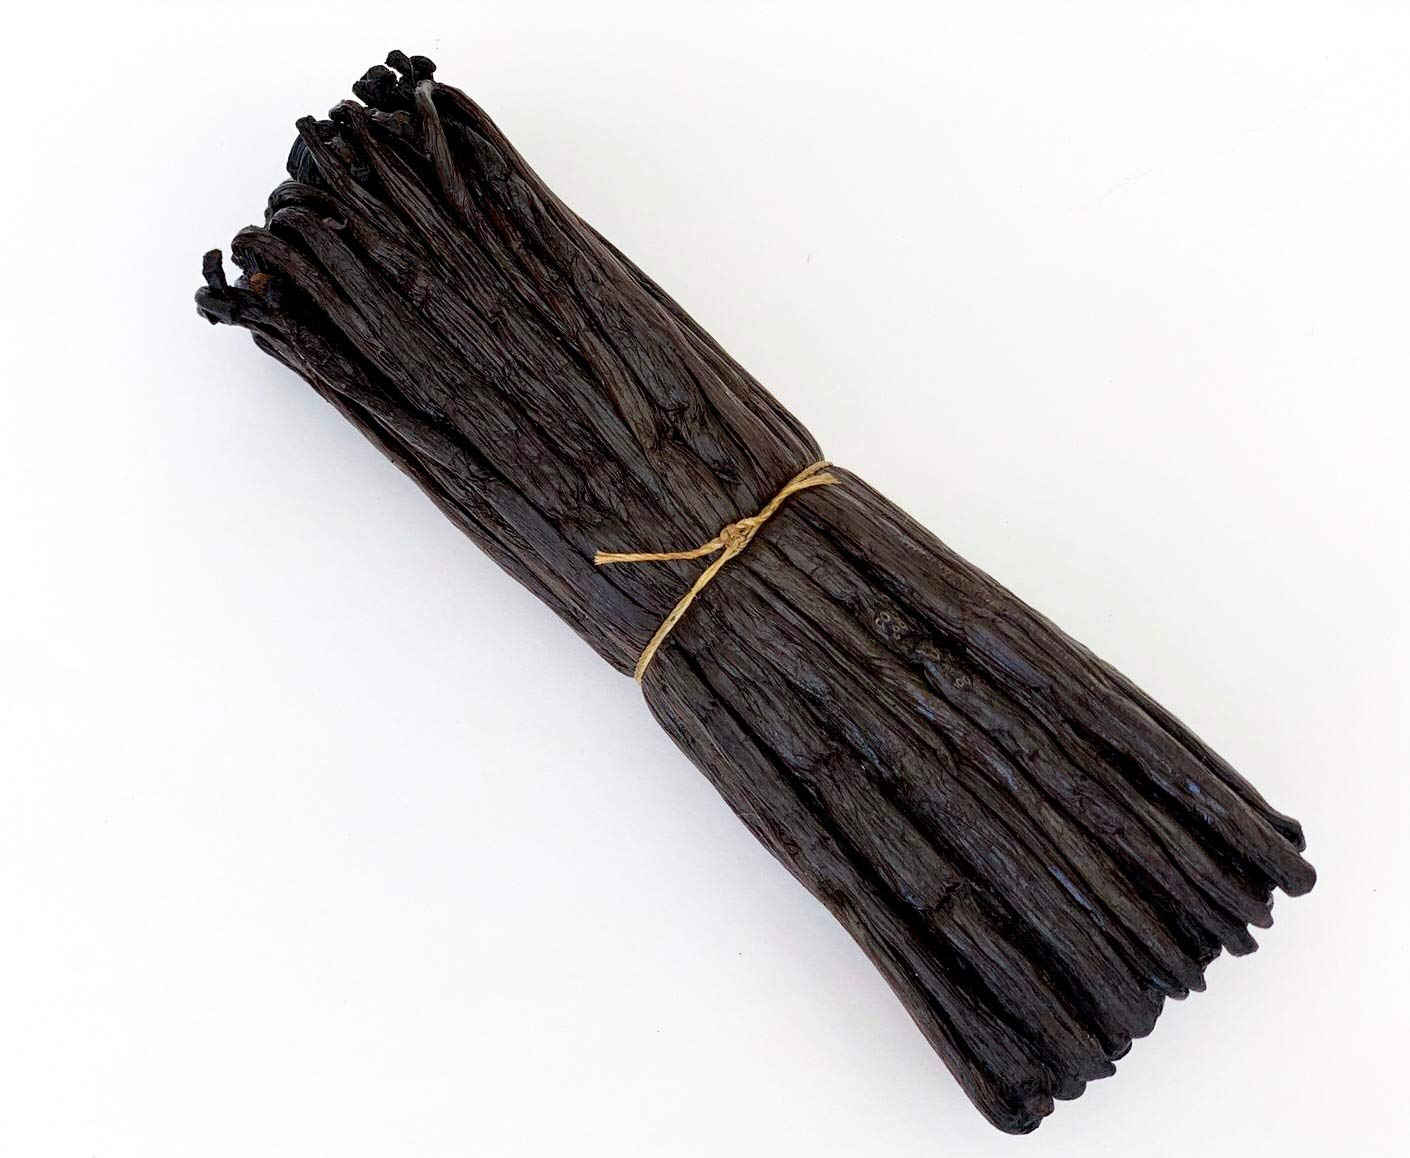 Madagascar Vanilla Beans Grade A for Extract, Cooking and Baking (25ea) by FITNCLEAN VANILLA. 5.5''-7'' Bourbon Fresh Gourmet NON-GMO Whole Pods by FITNCLEAN SPICES